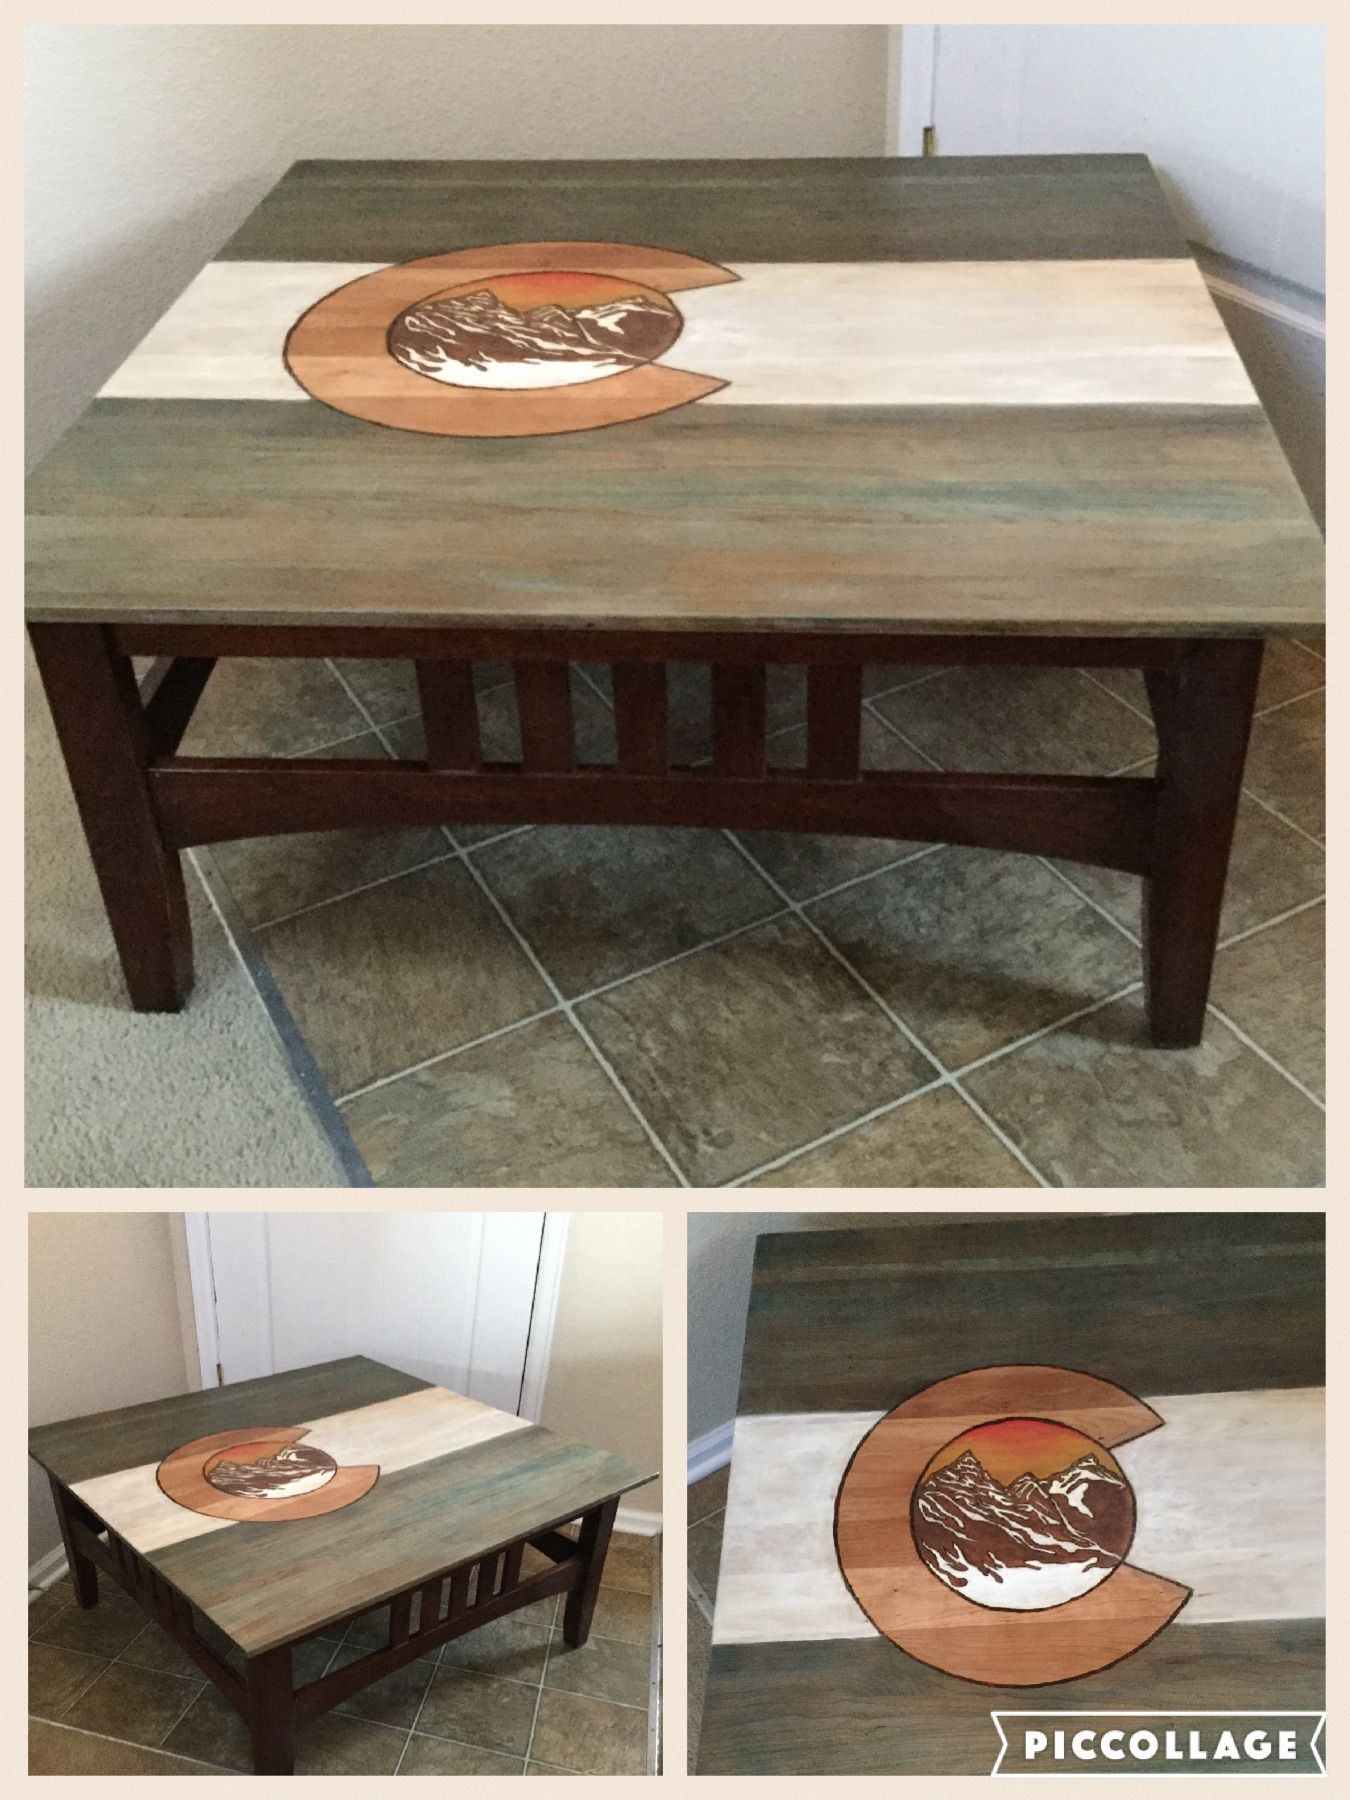 Hand painted wood burned Colorado coffee table